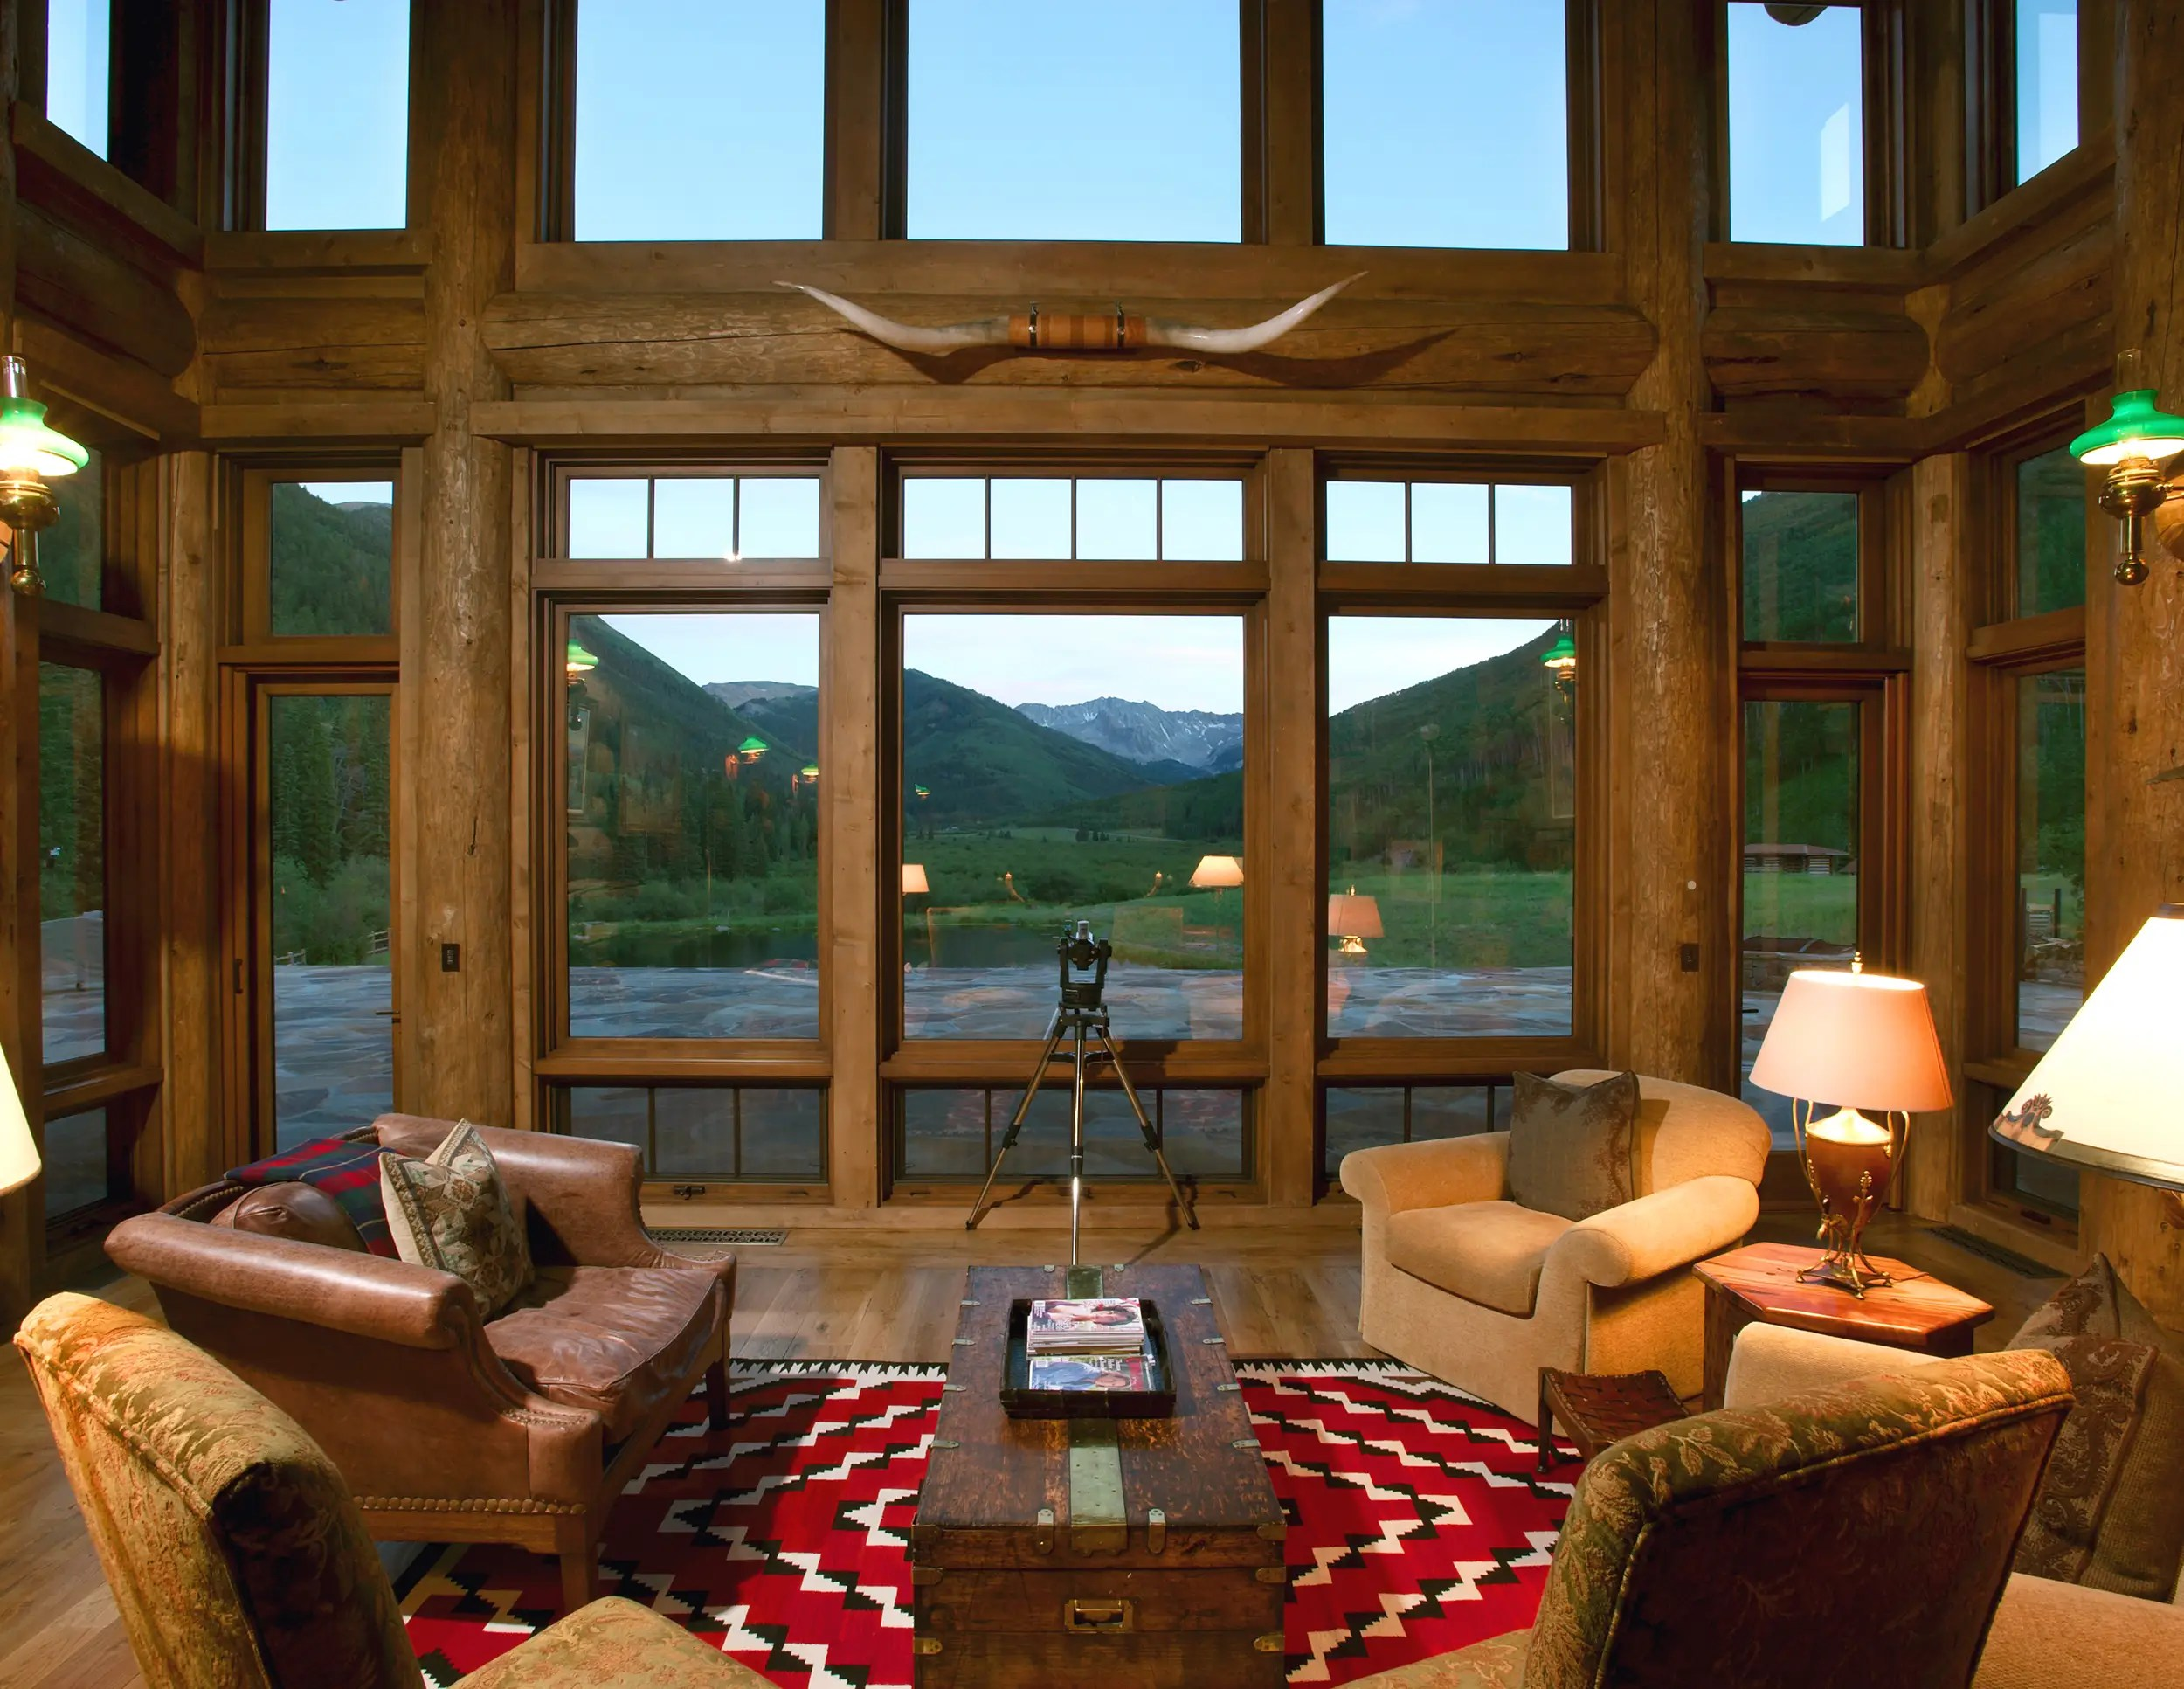 Living spaces take full advantage of the views.